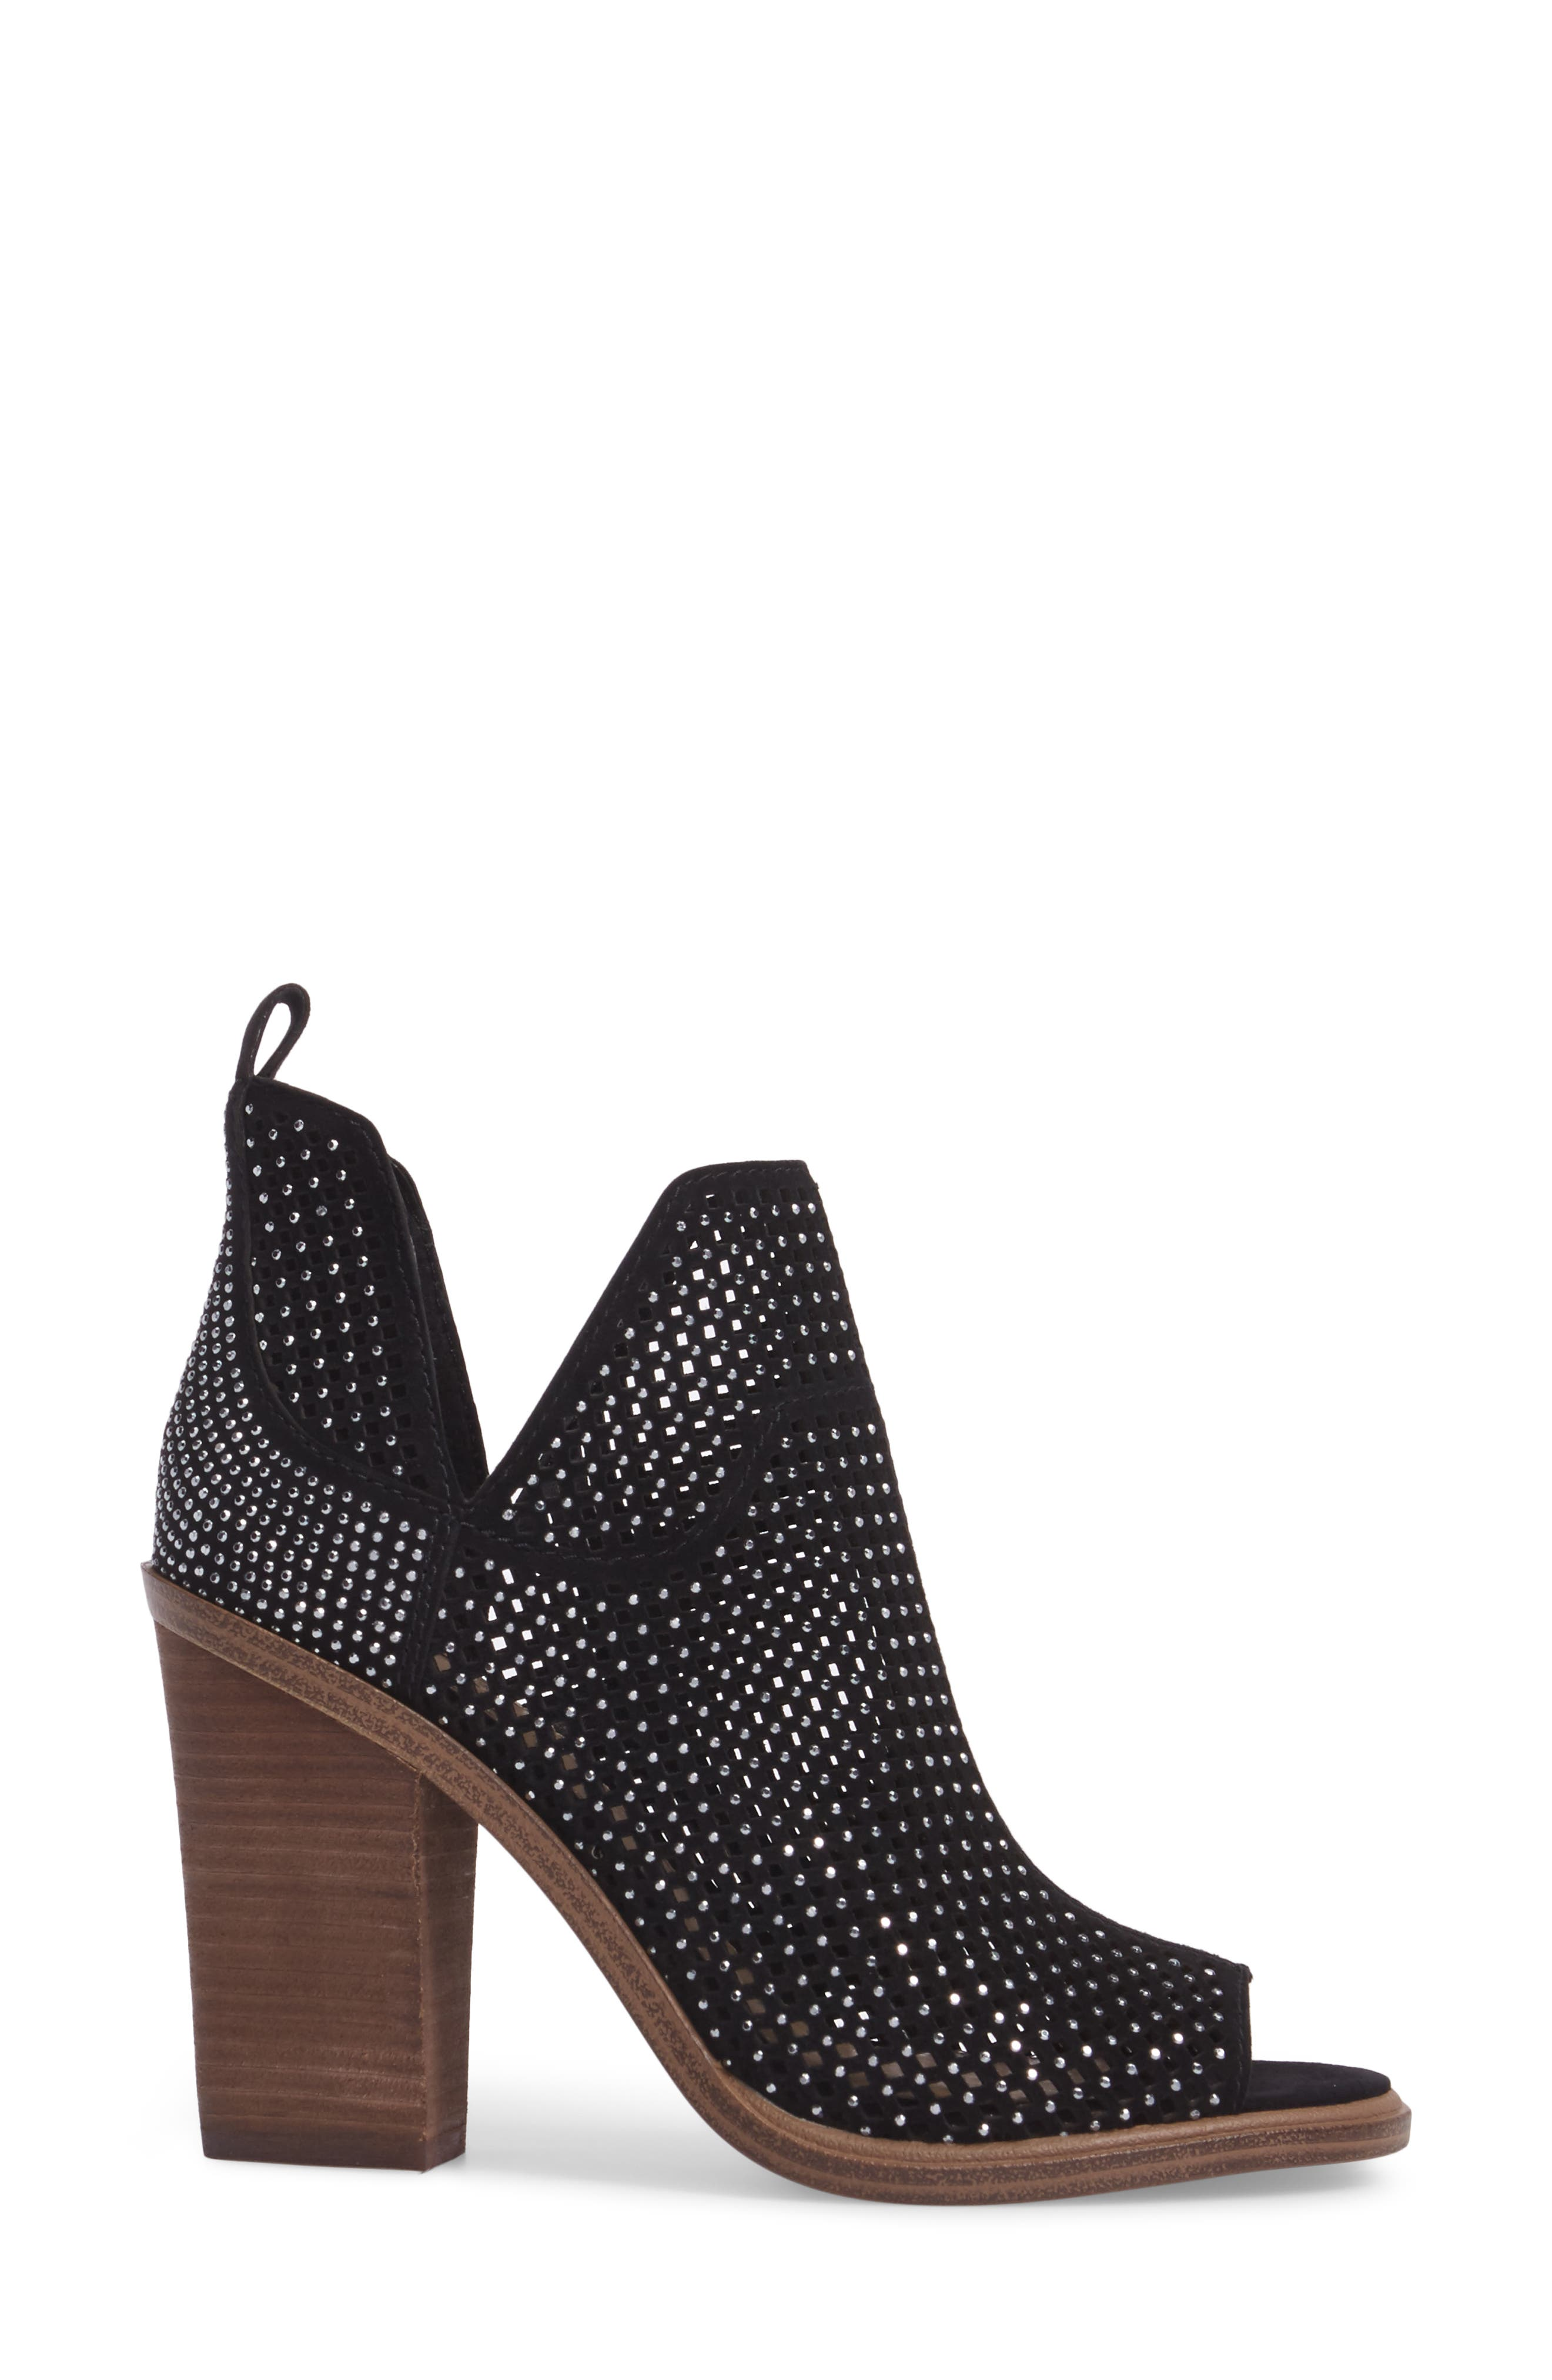 VINCE CAMUTO,                             Kiminni Open Toe Bootie,                             Alternate thumbnail 3, color,                             001